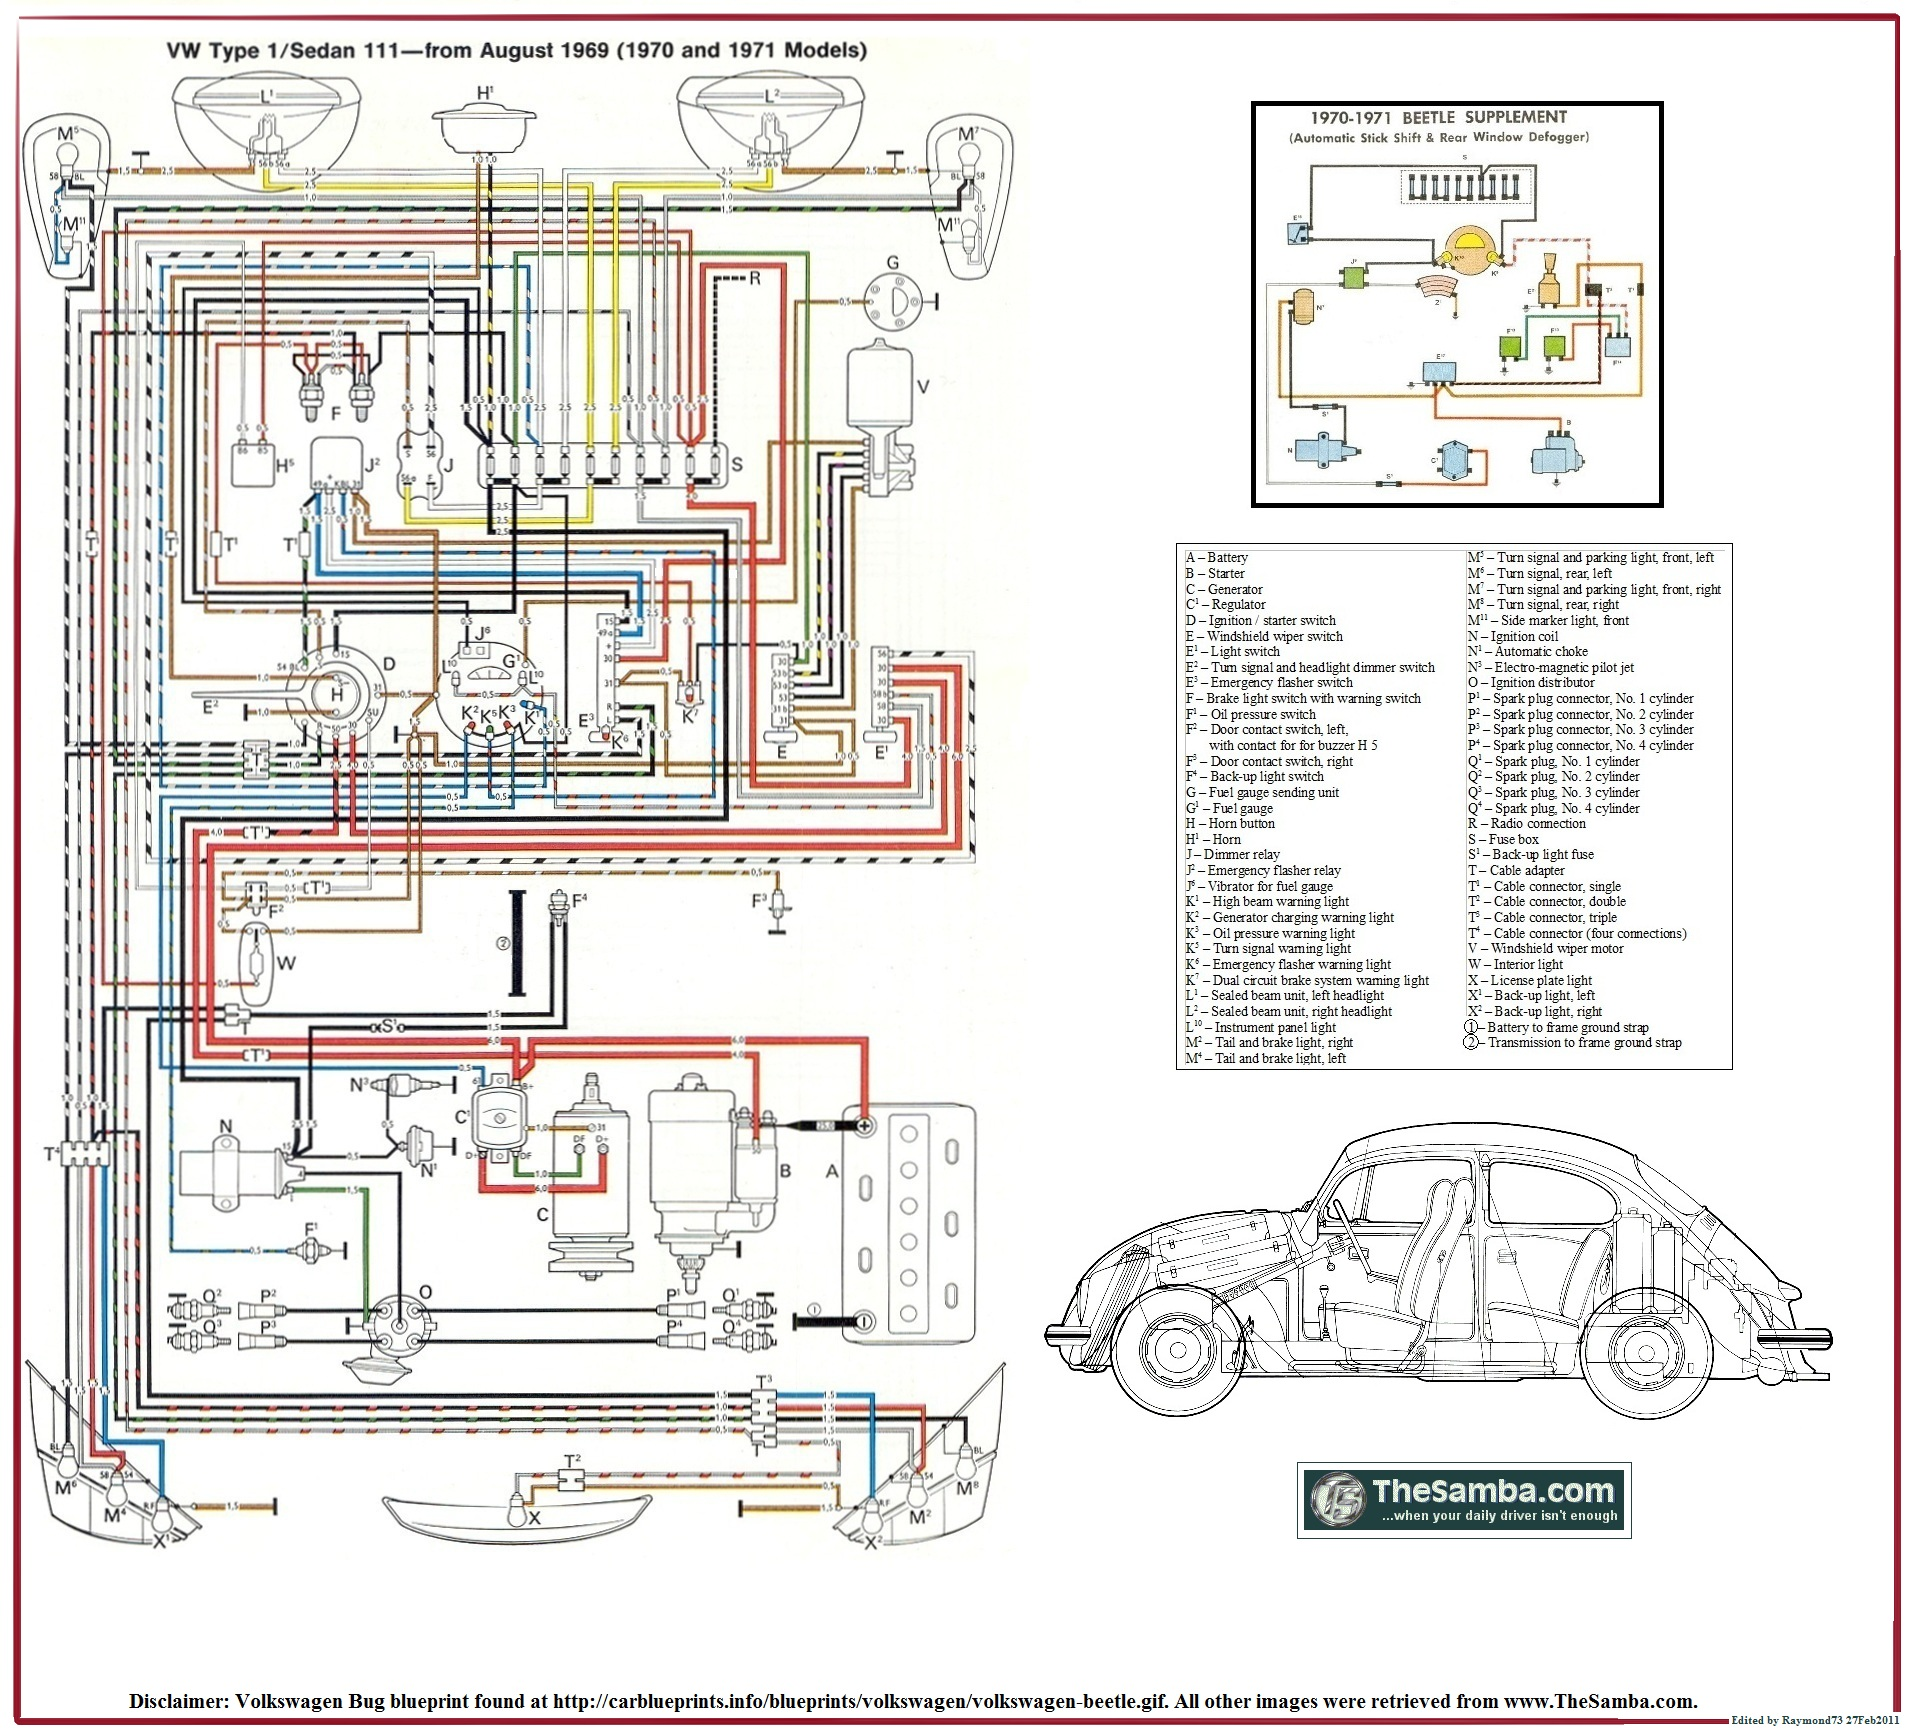 Wiring Diagram For 1969 Roadrunner 69 Road Runner Schematic Diagram1970 Beetle Uk 1970 Diagrams Online 1300